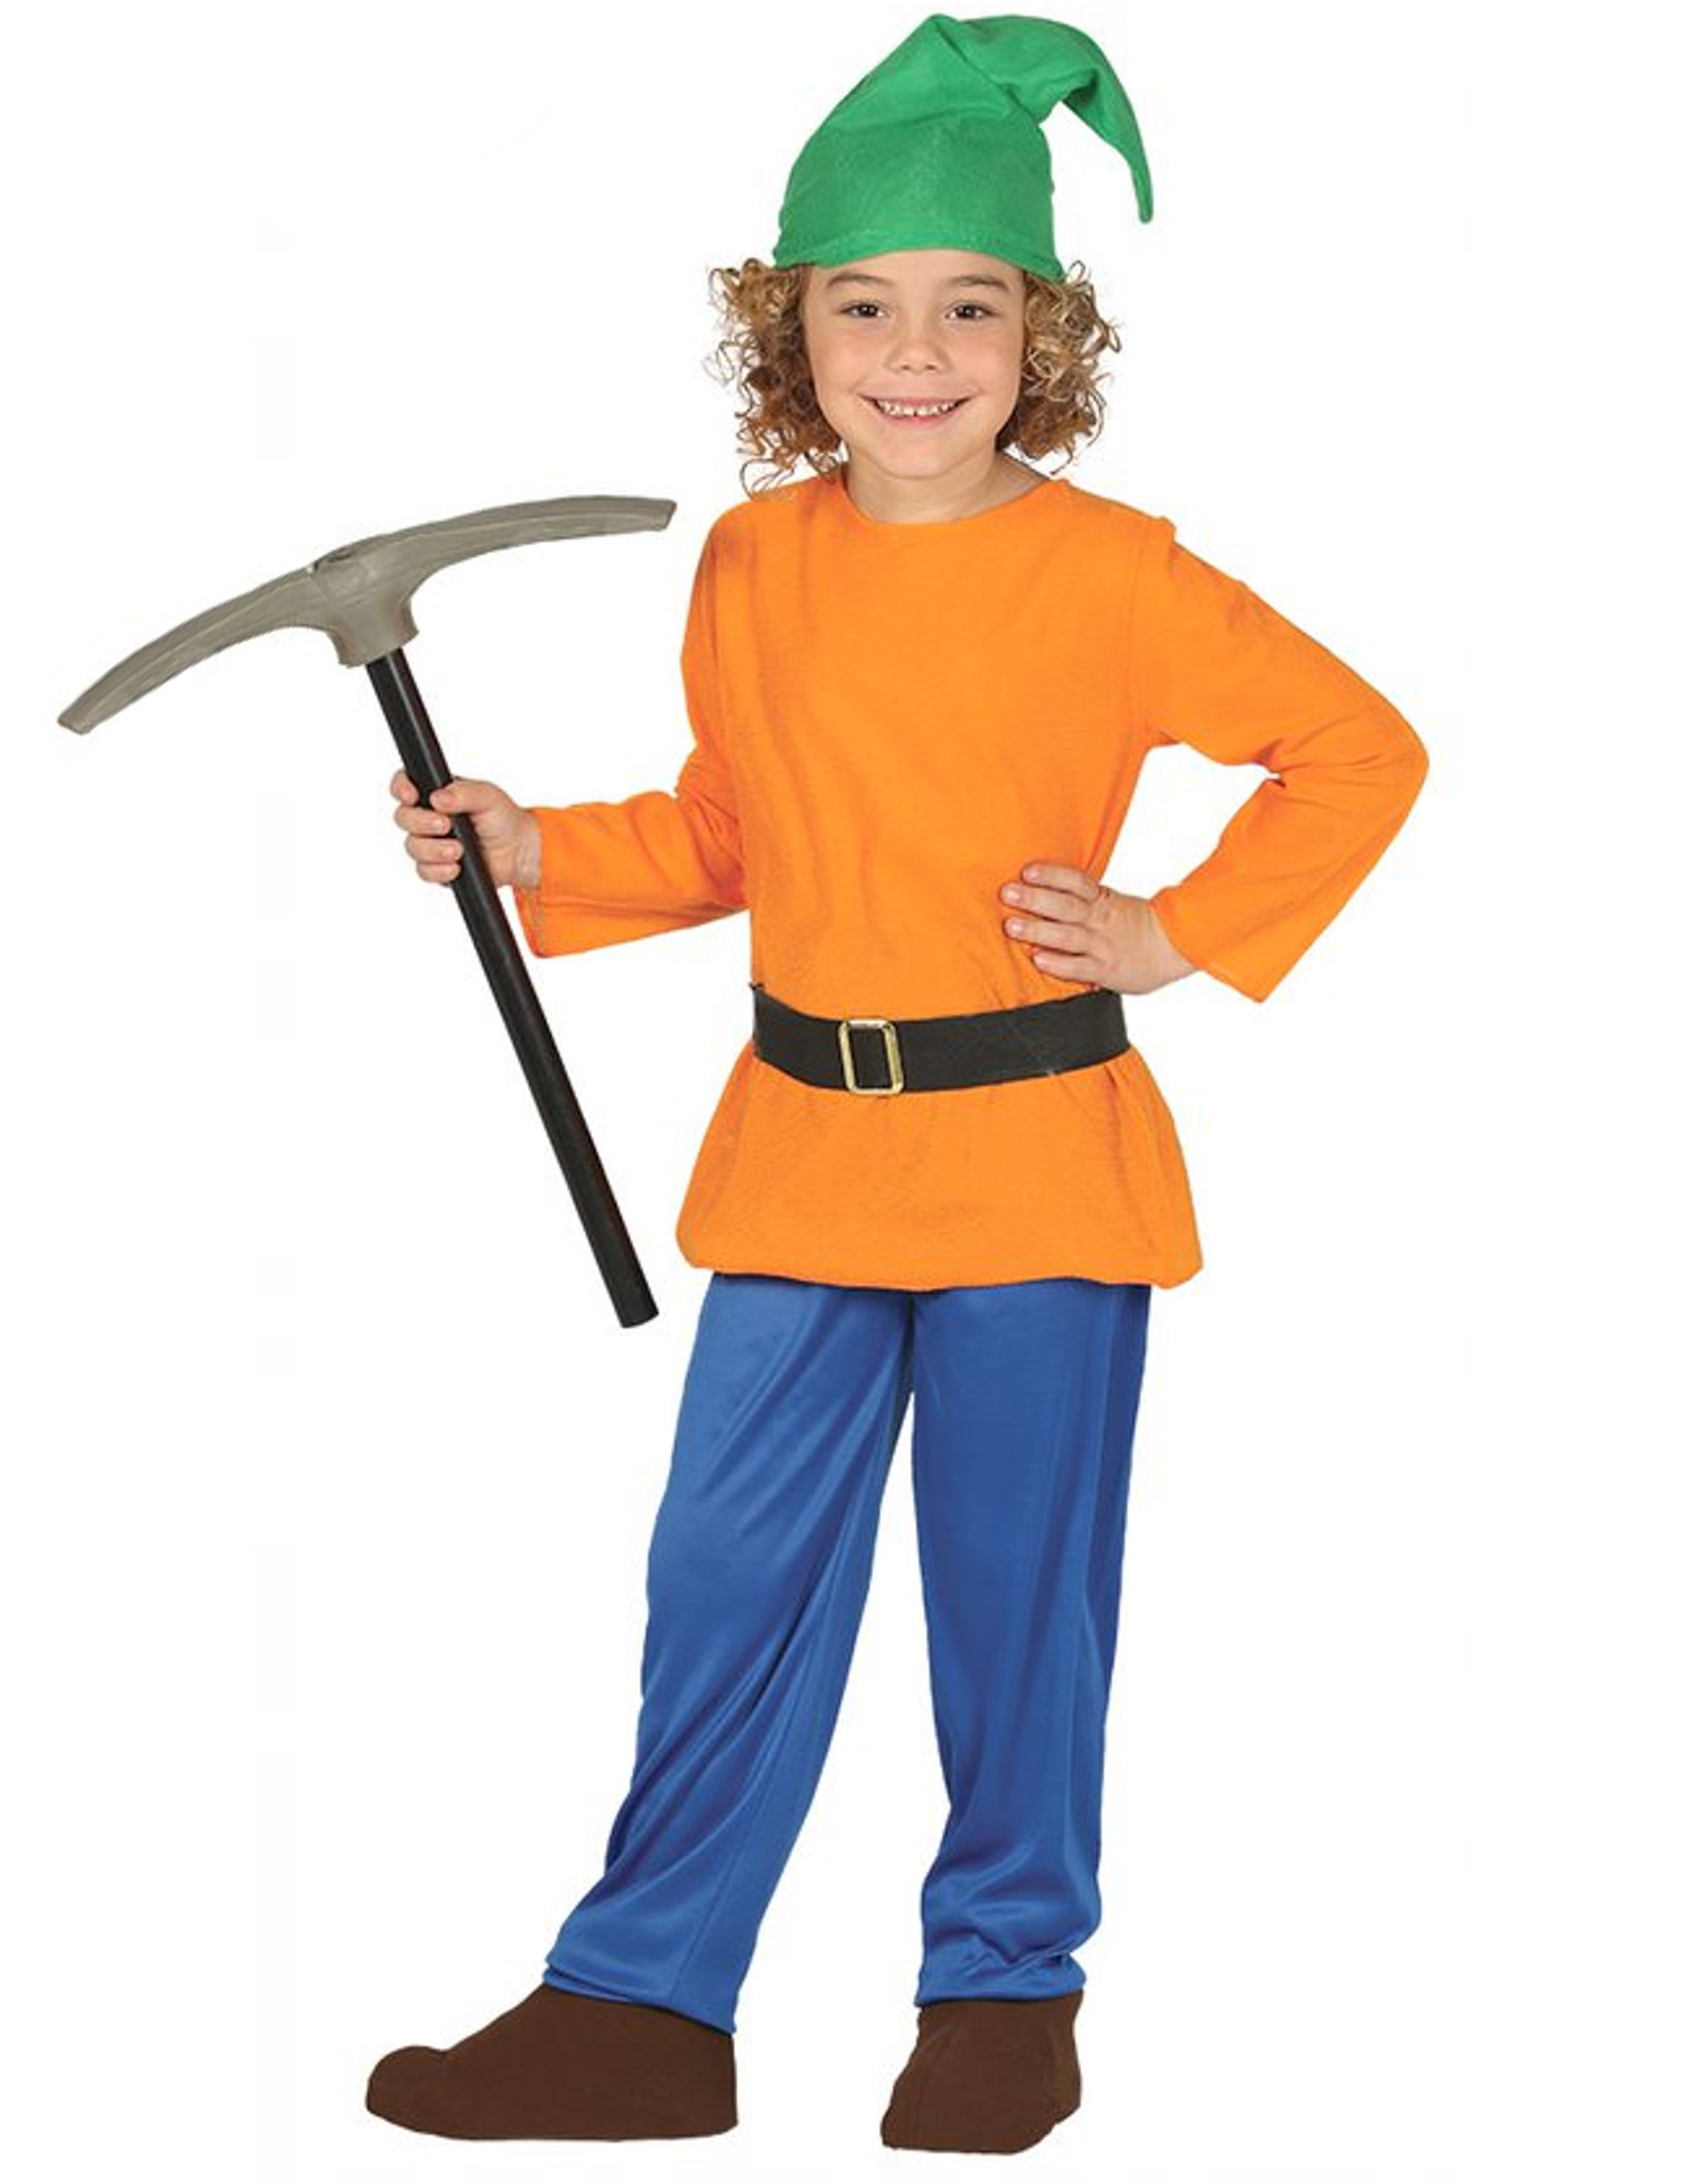 Zwerg Kostum Fur Kinder Fasching Grun Orange Blau Gunstige